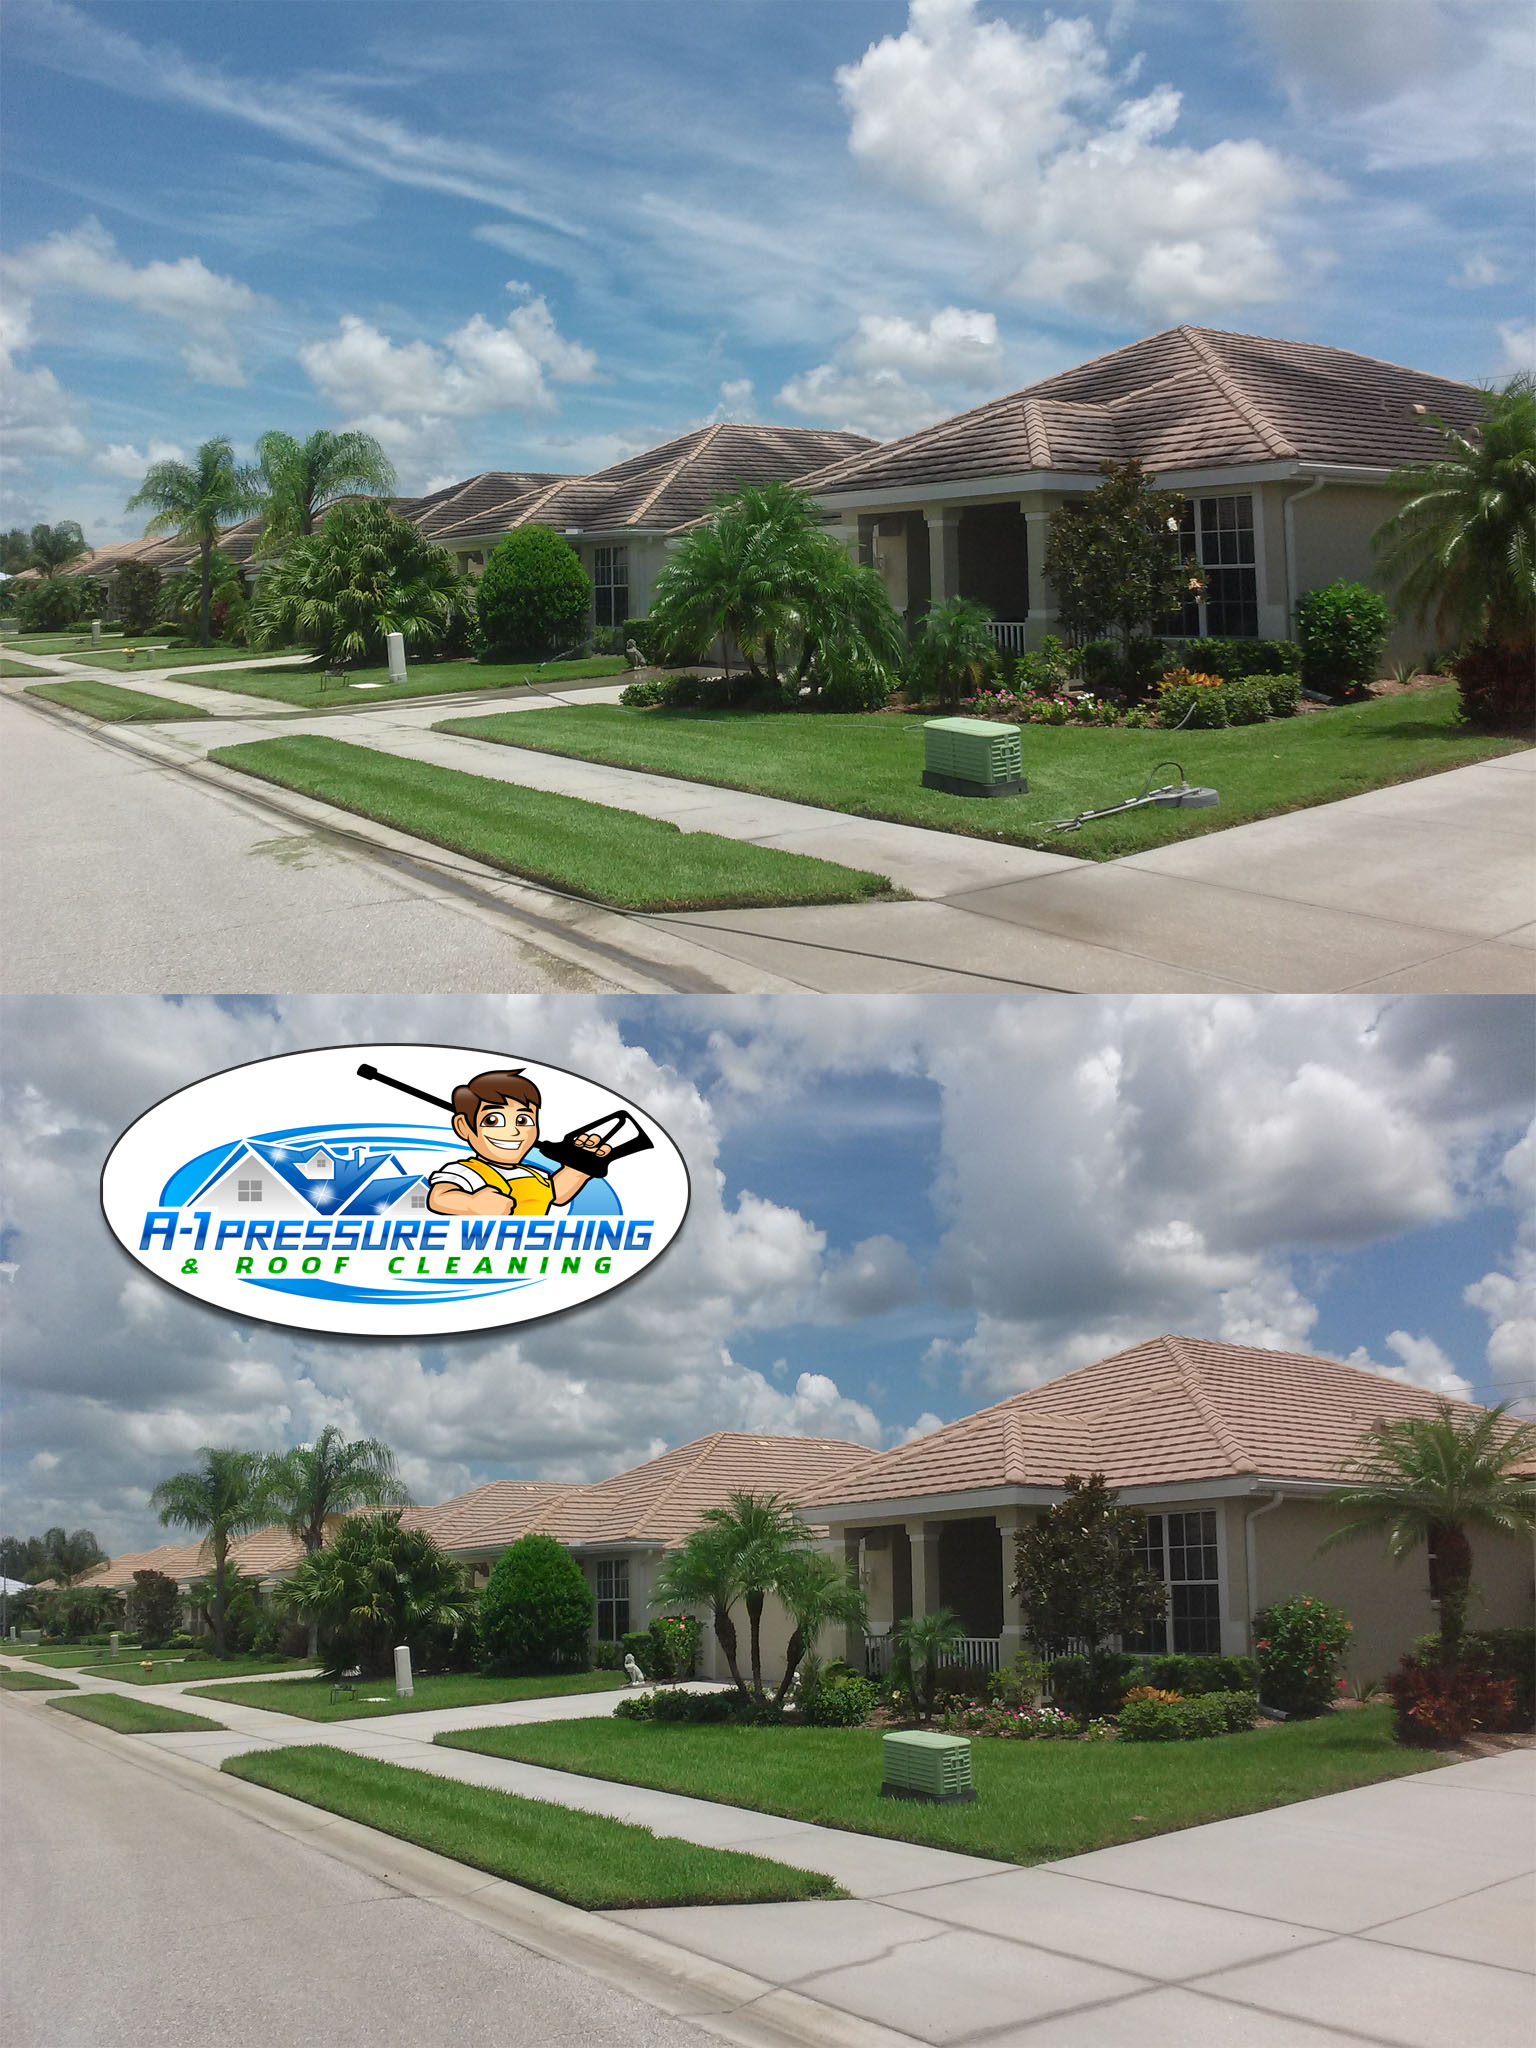 A-1 Pressure Washing & Roof Cleaning, Serving Sarasota, Charlotte, Manatee, and Lee Counties since  1996 - FREE ESTIMATES 941-815-8454